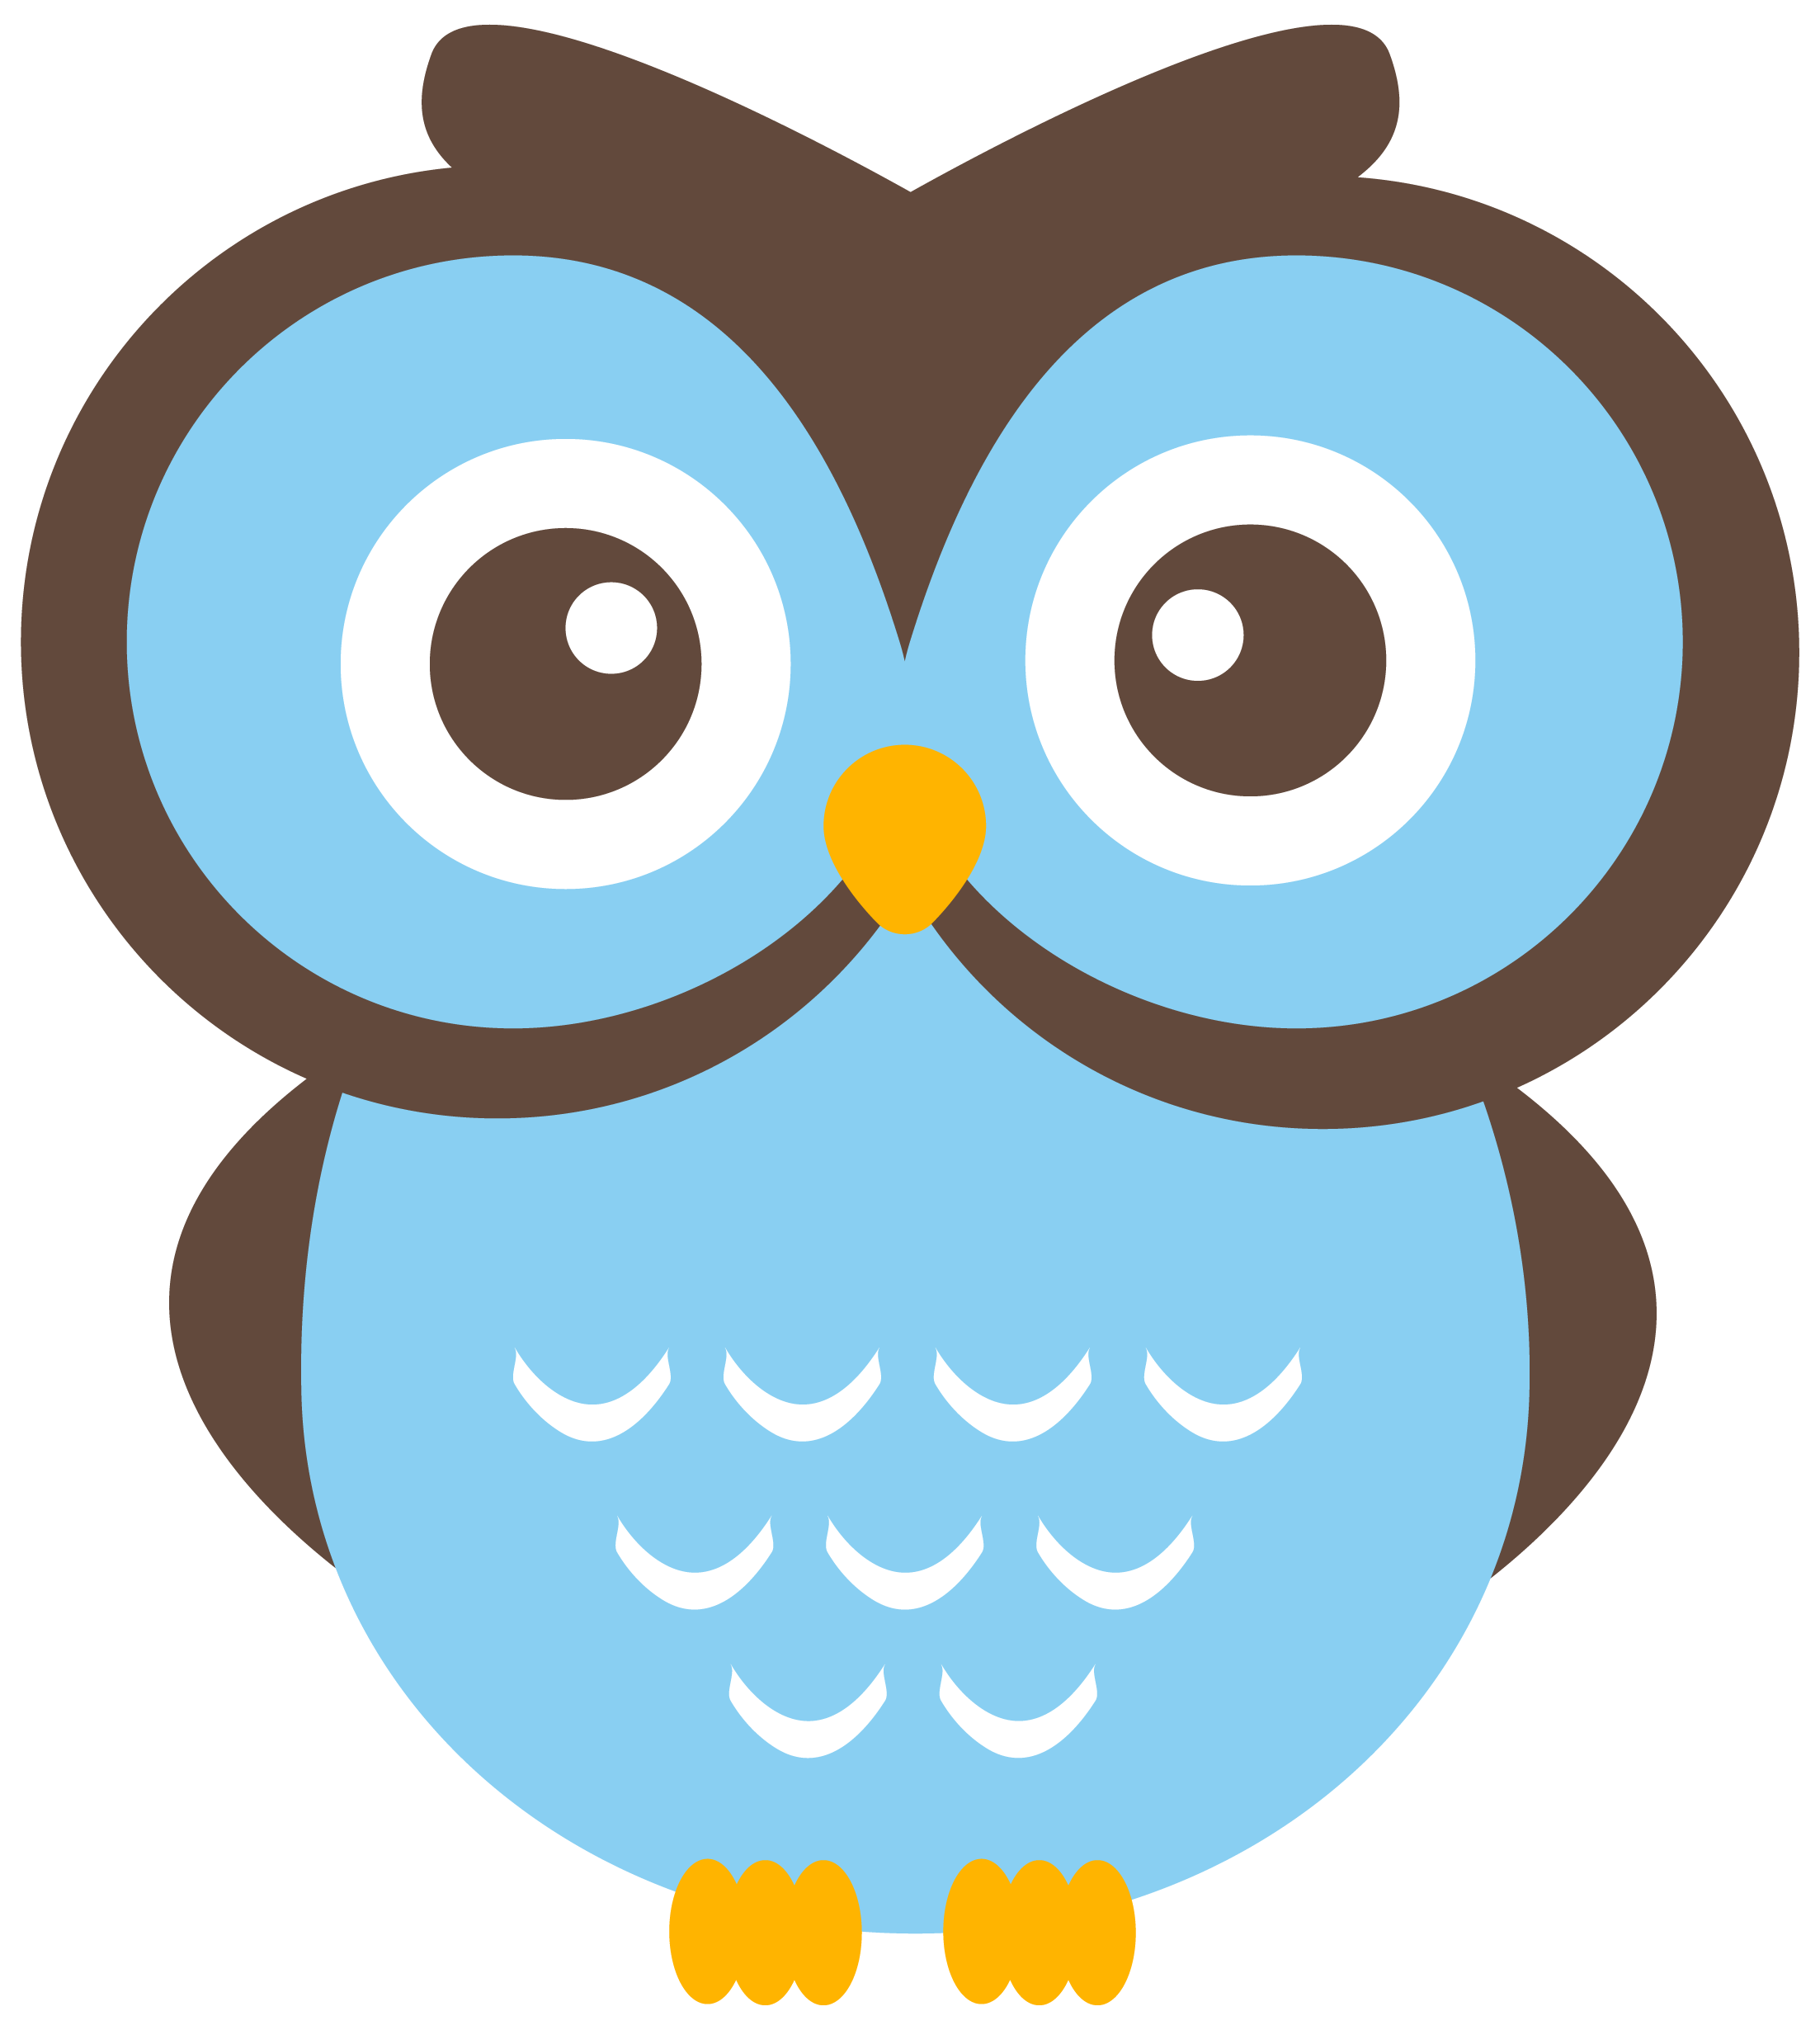 Orange clipart owl. Owls on clip art